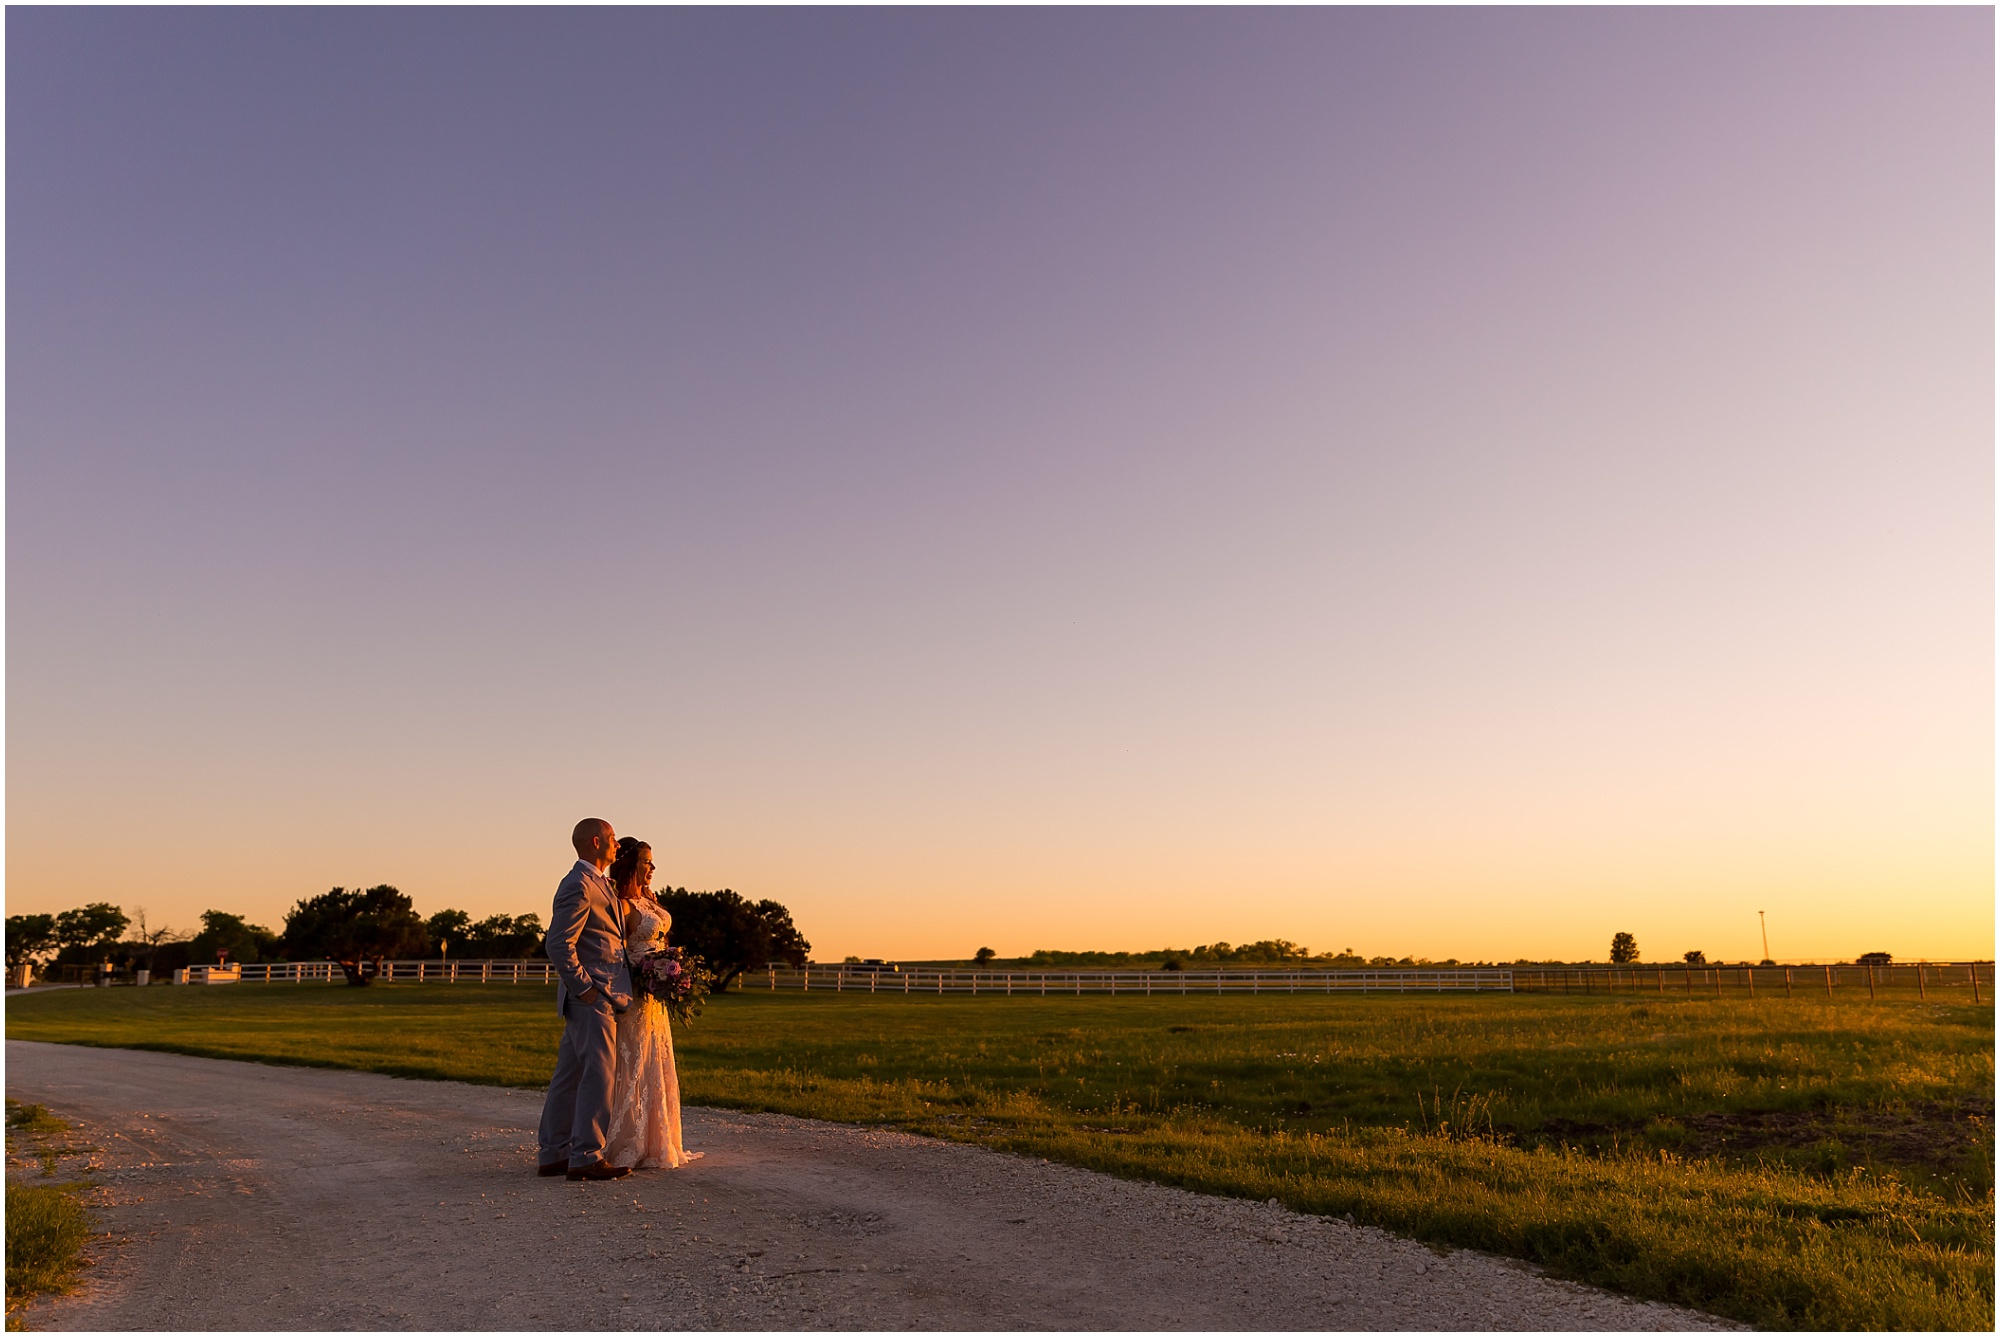 A bride and groom look out over a field as the sunsets in Waco, Texas | Jason & Melaina Photography | www.jasonandmelaina.com